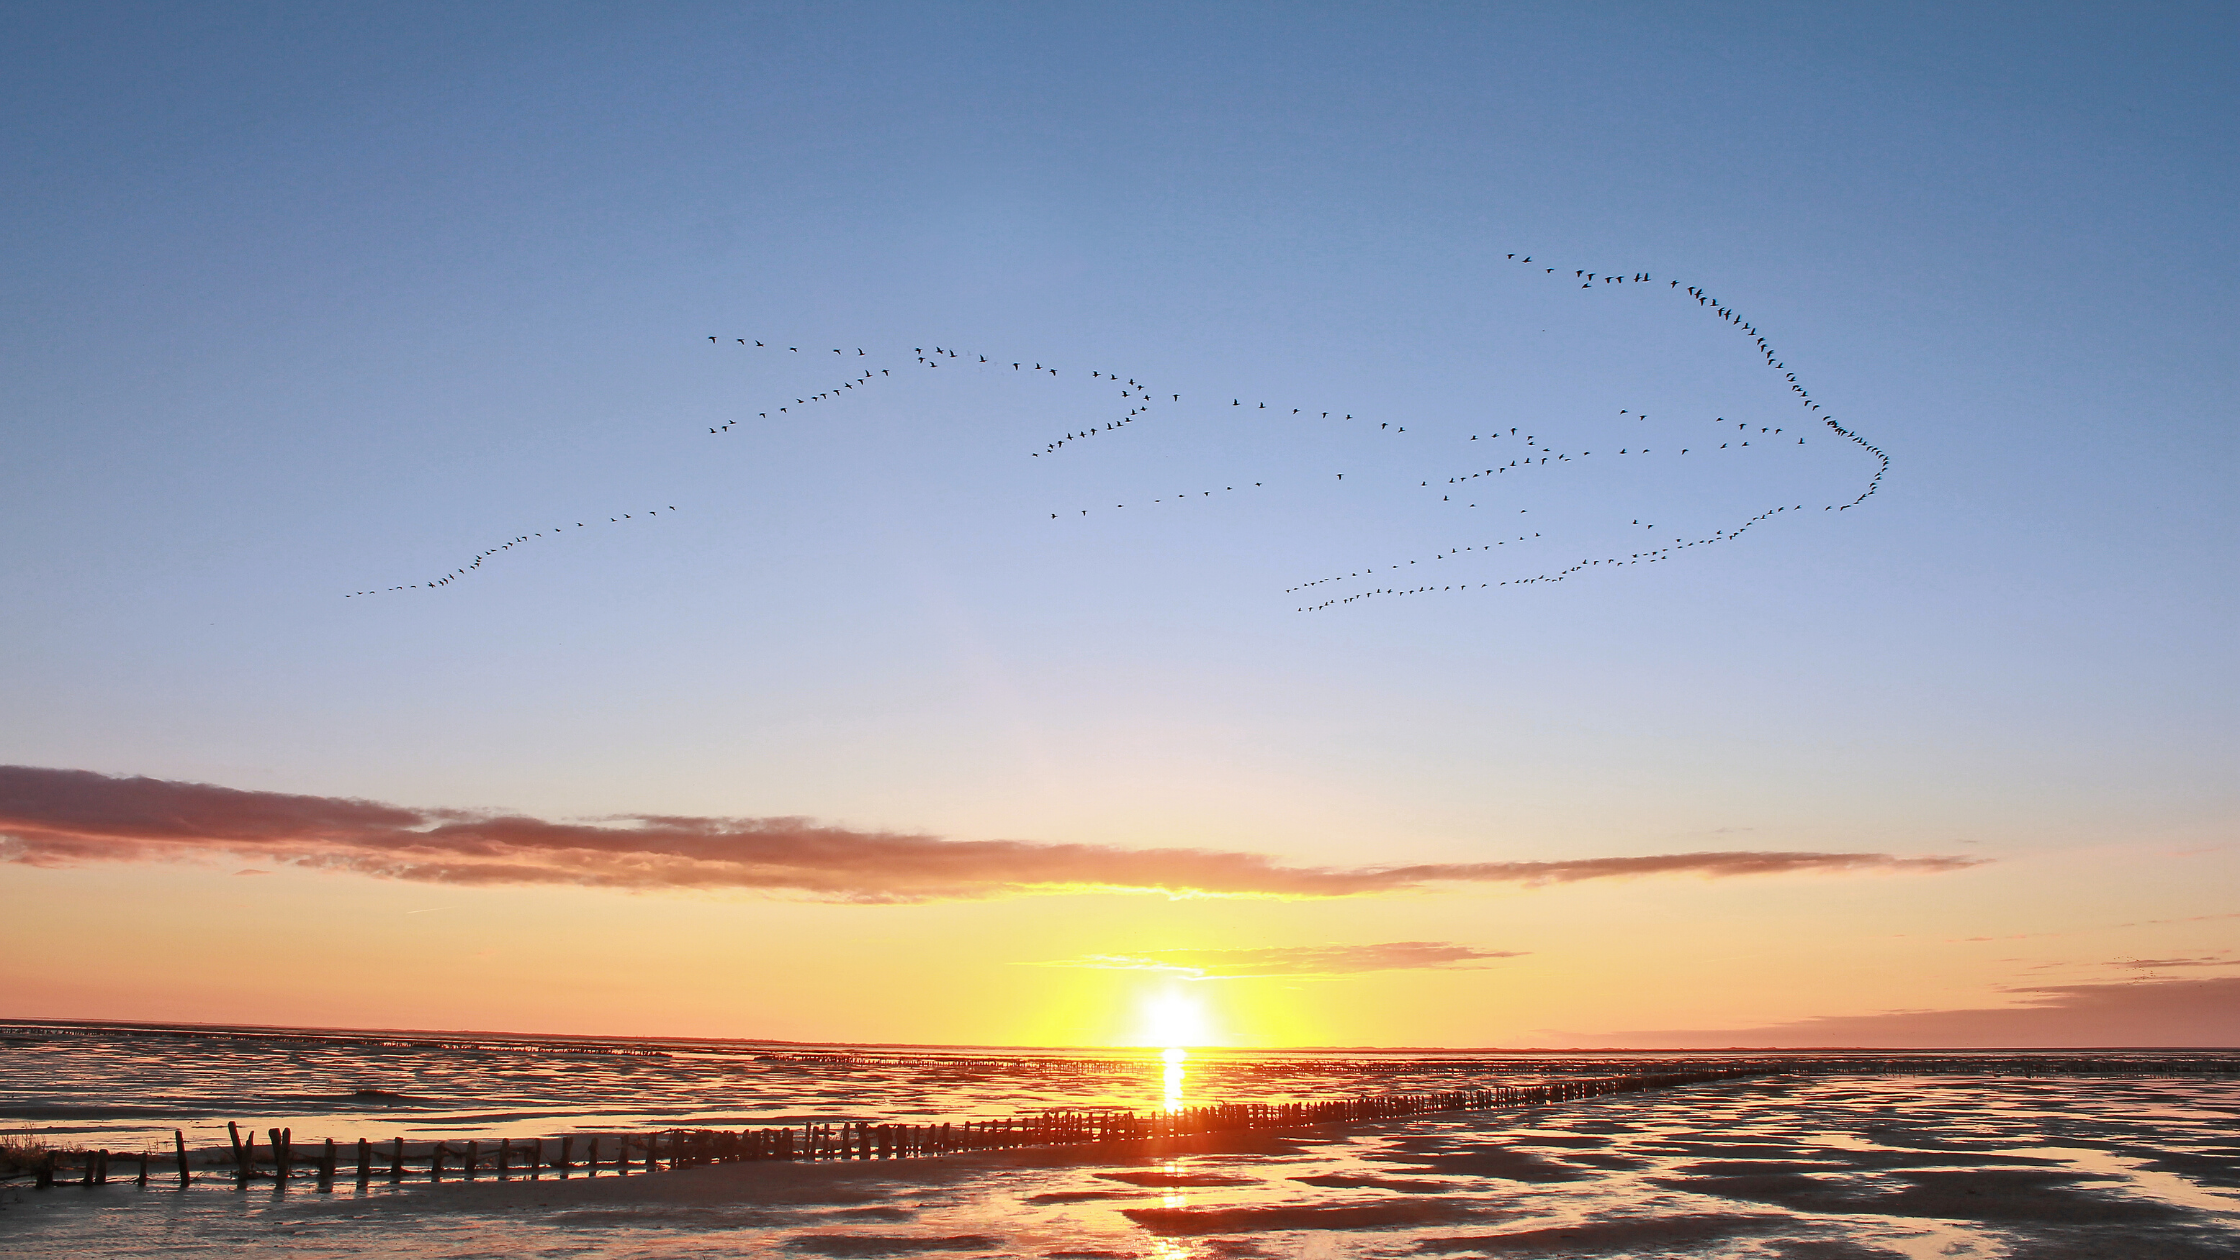 The Wadden Sea area at low tide during sunset